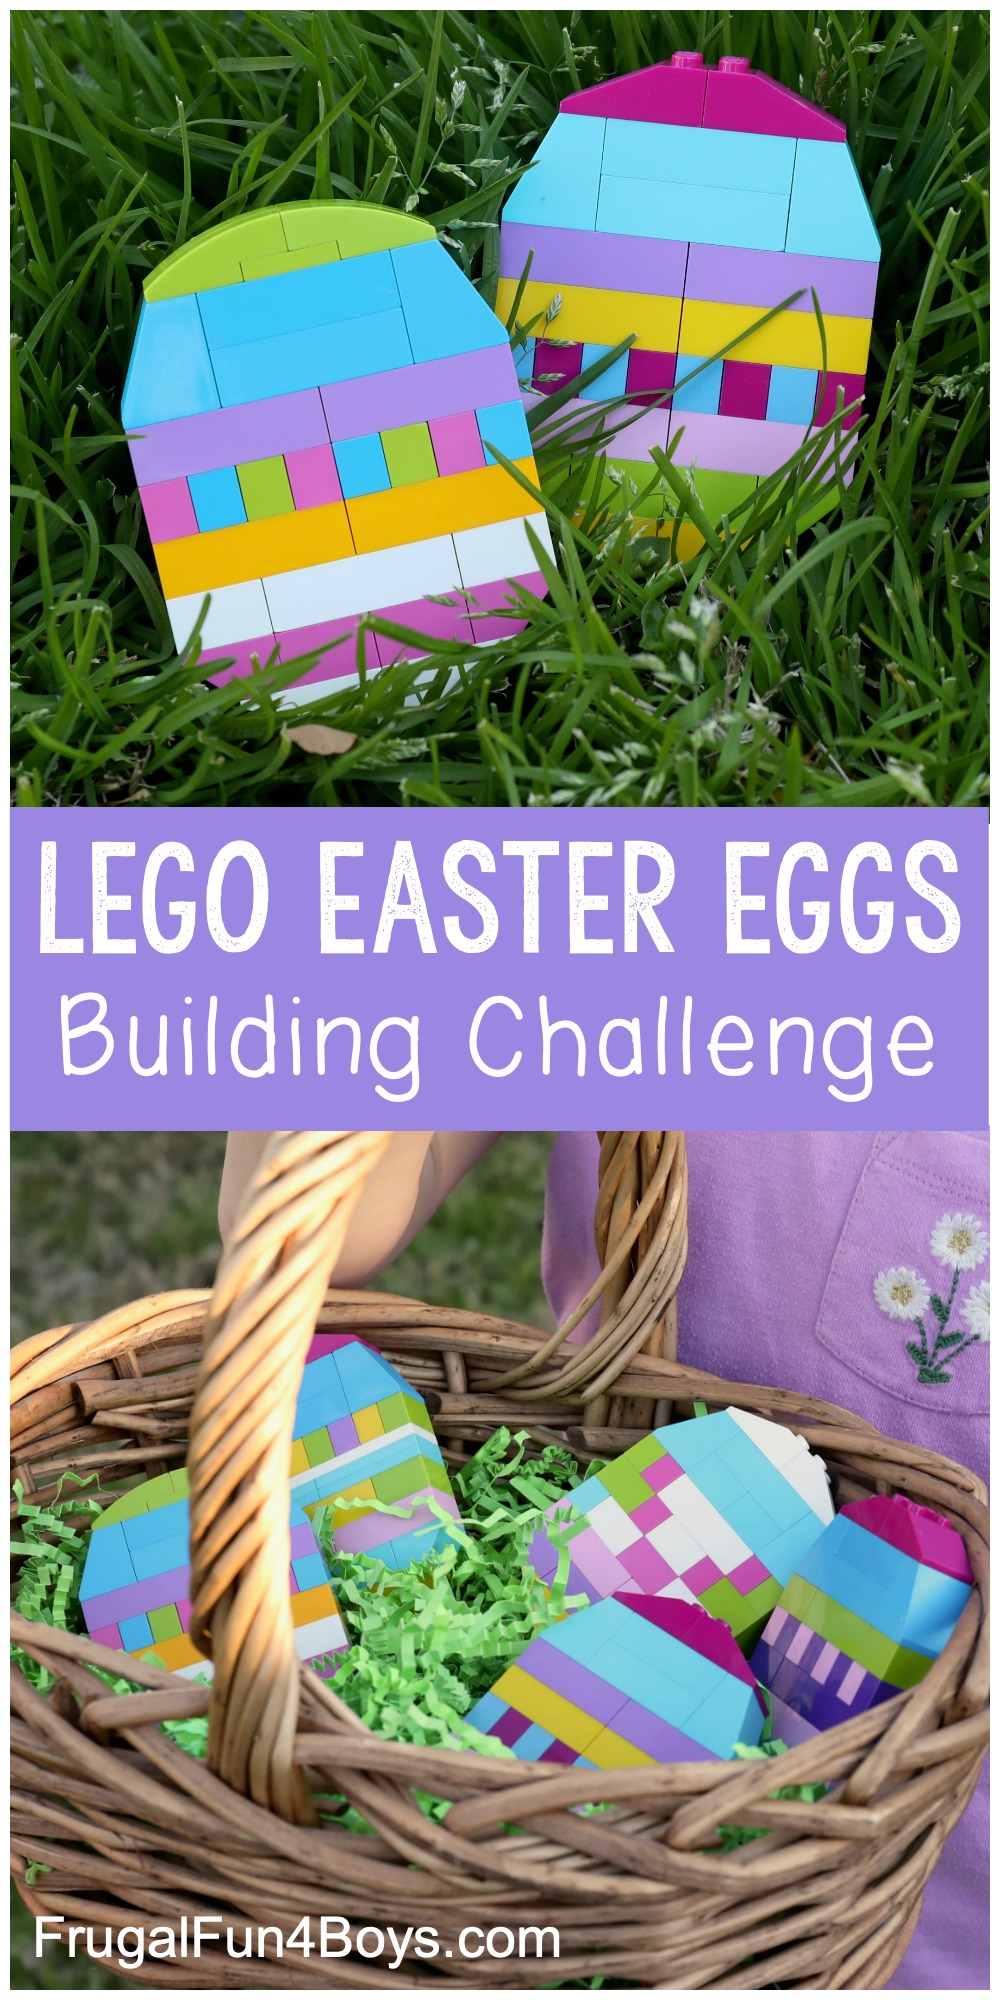 Build LEGO Easter eggs